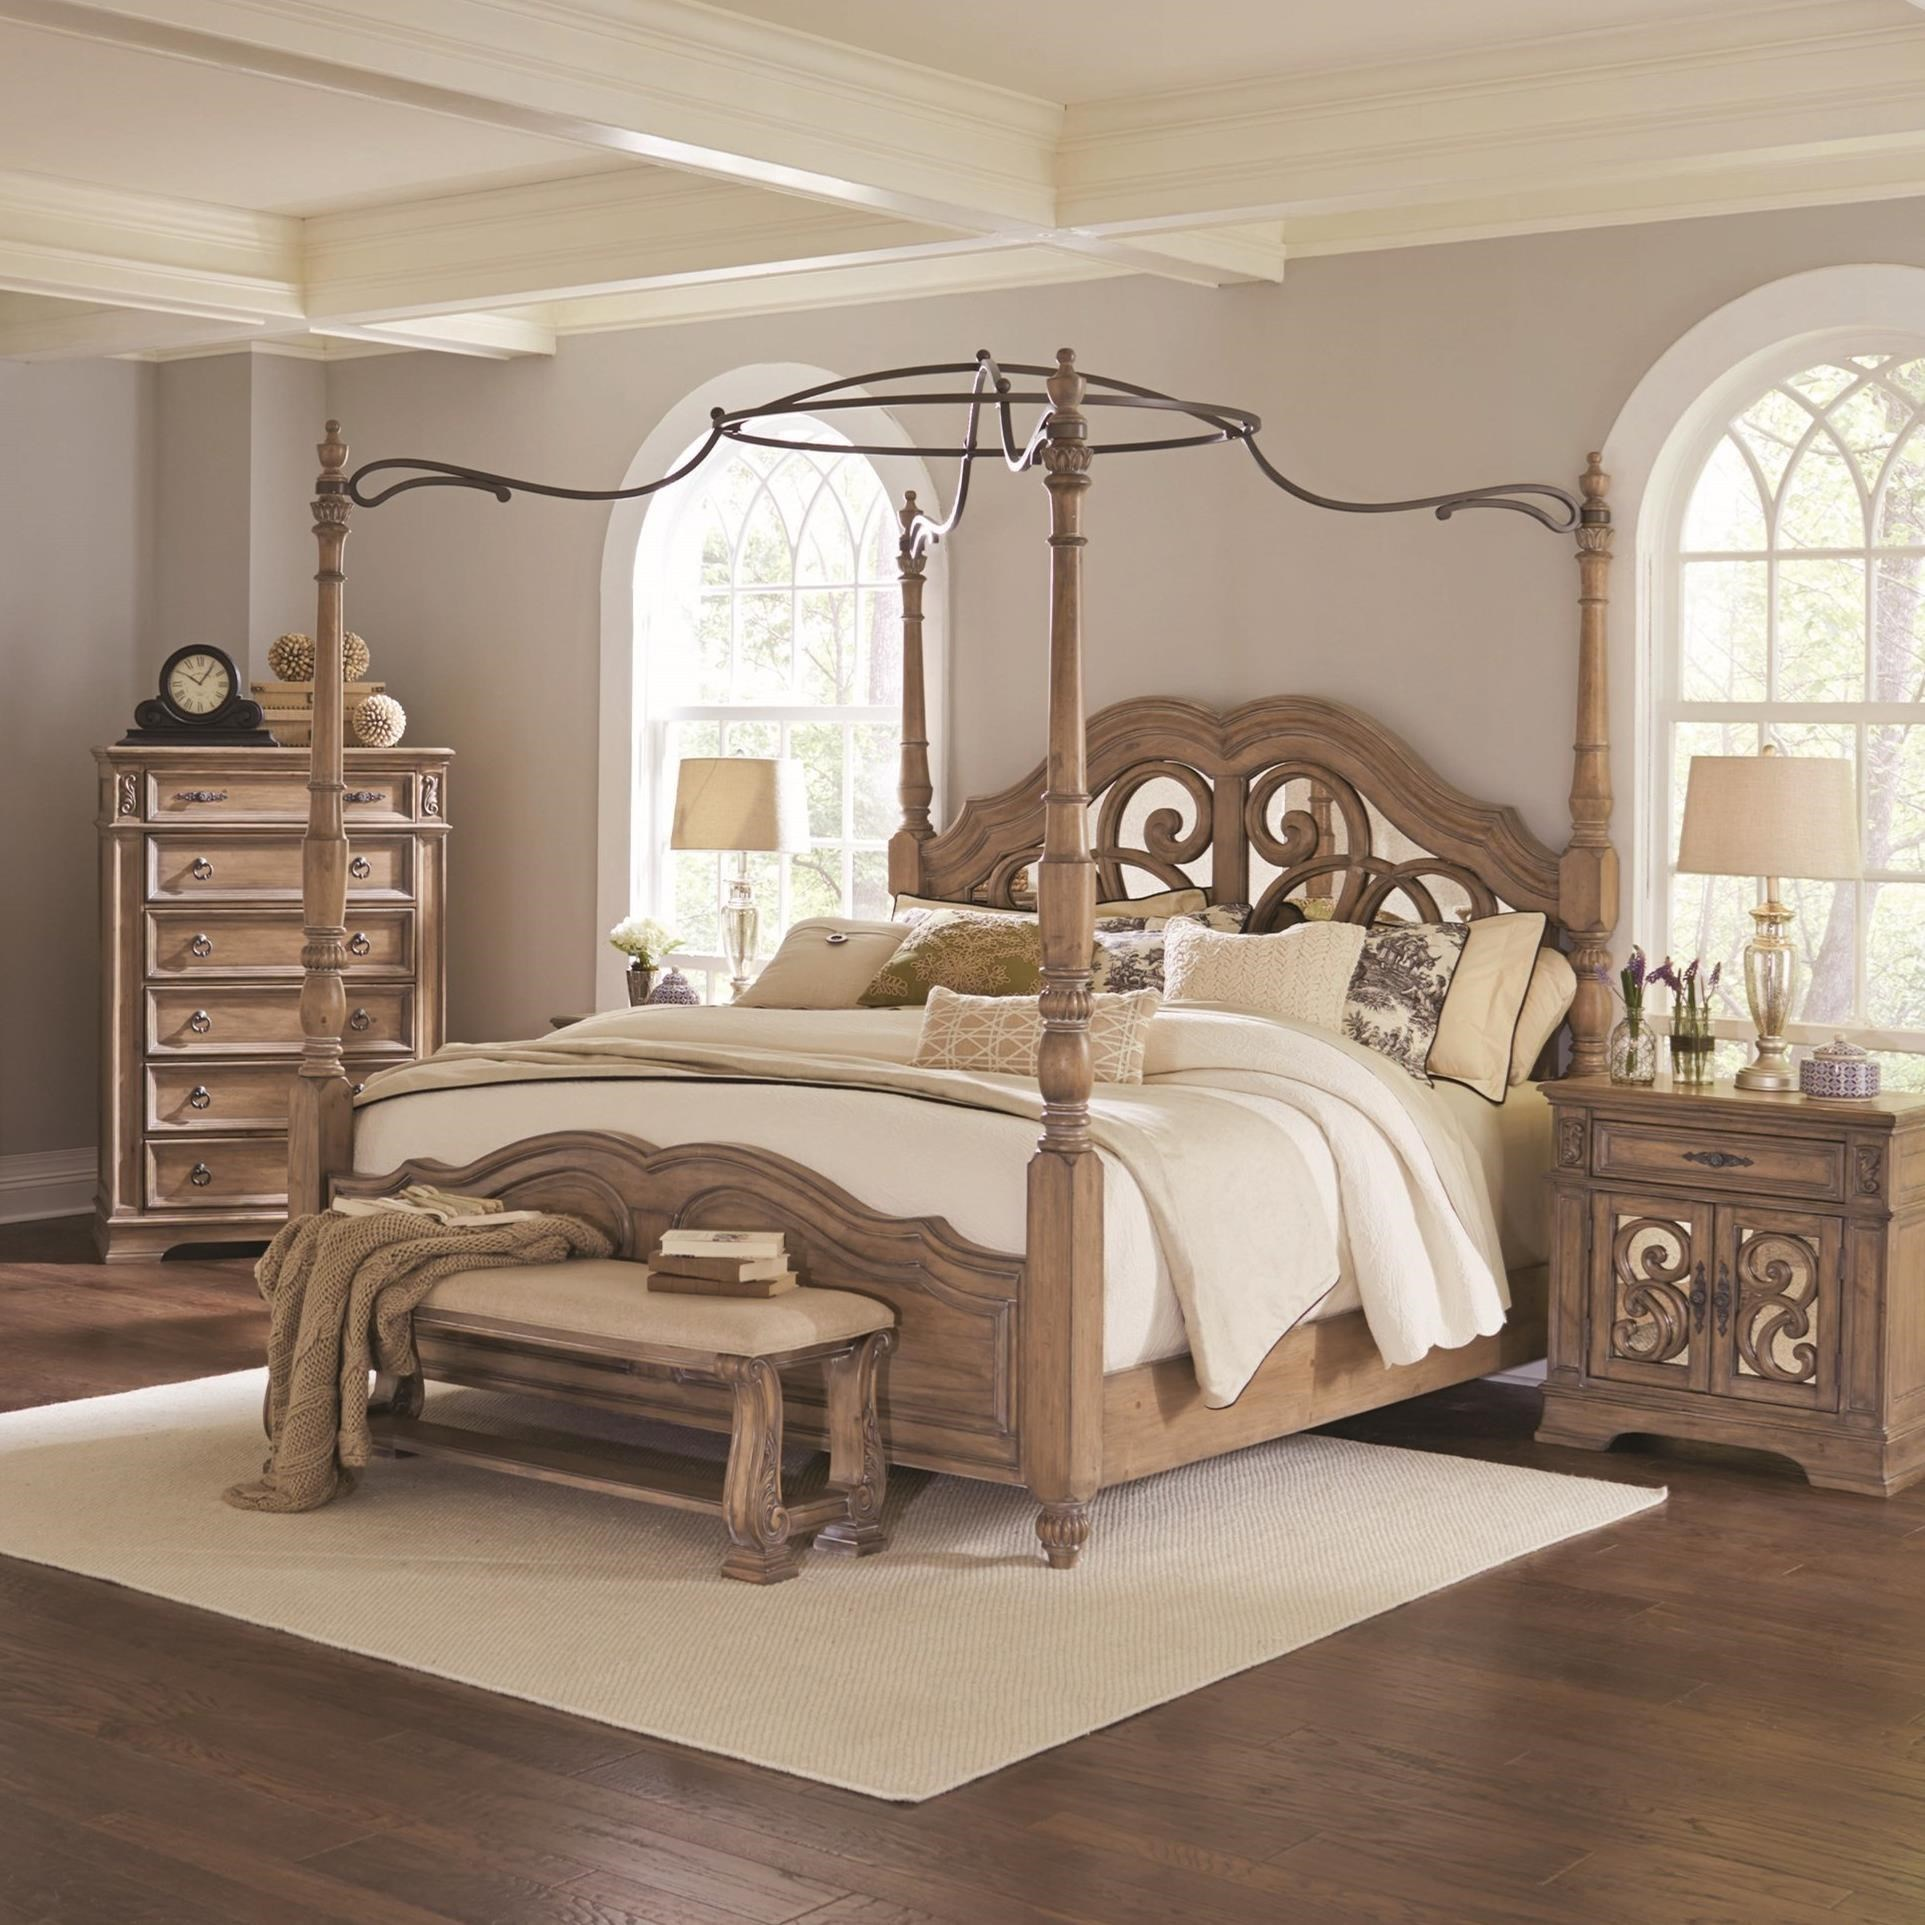 Ilana Queen Canopy Bed With Mirror Back Headboard Quality Furniture At Affordable Prices In Philadelphia Main Line Pa